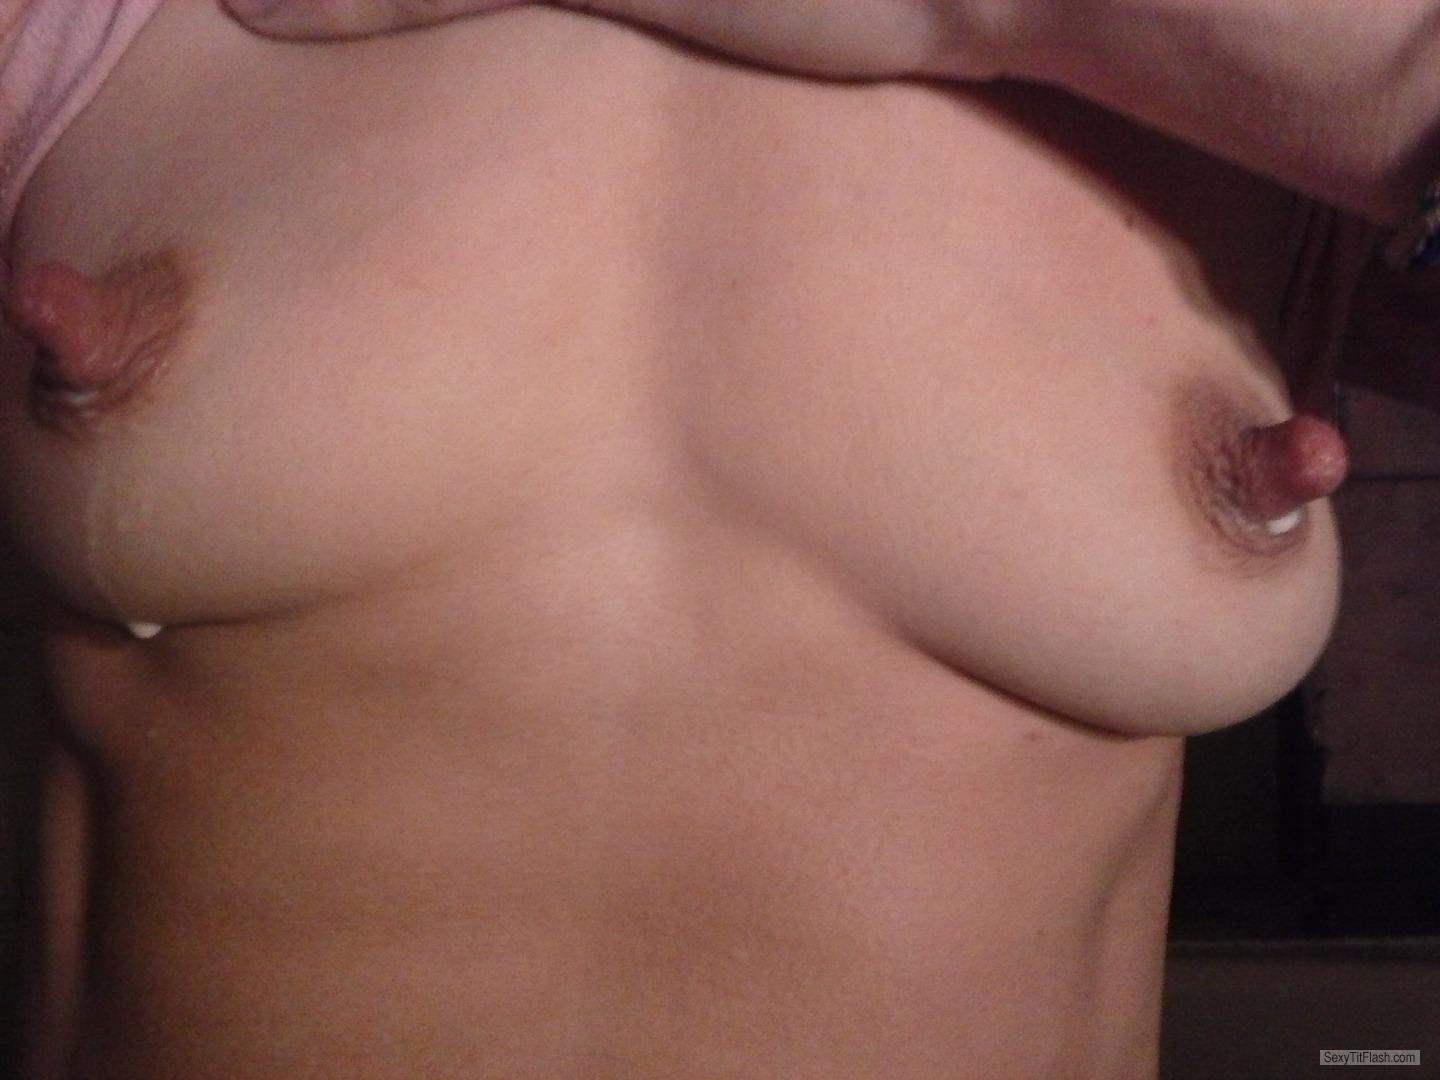 My Small Tits Selfie by Tasteme